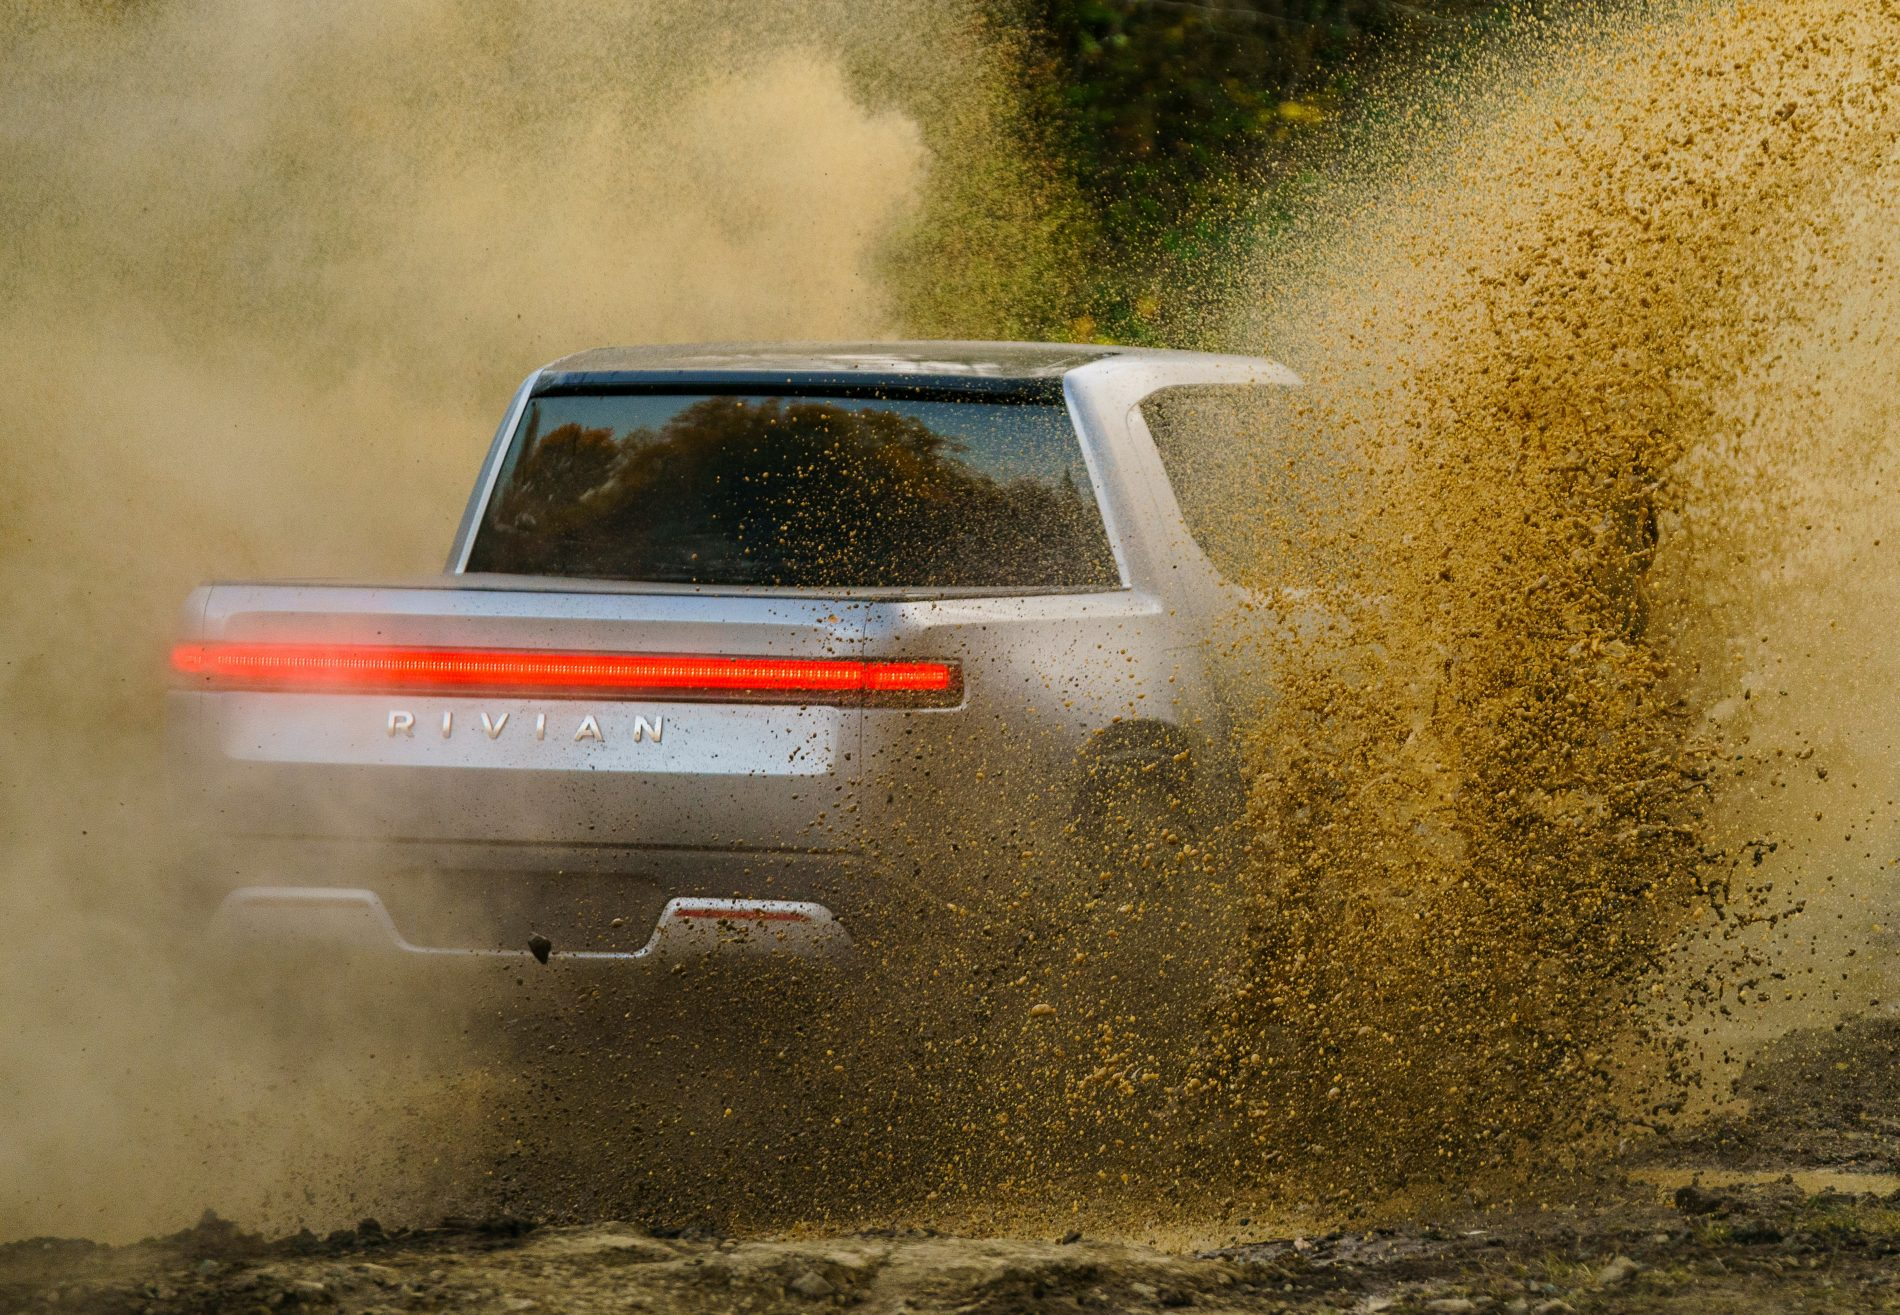 Car Shows In Illinois >> Rivian R1T Electric Pickup Truck Unveiled as the Monster Ford and Chevy Fear - autoevolution